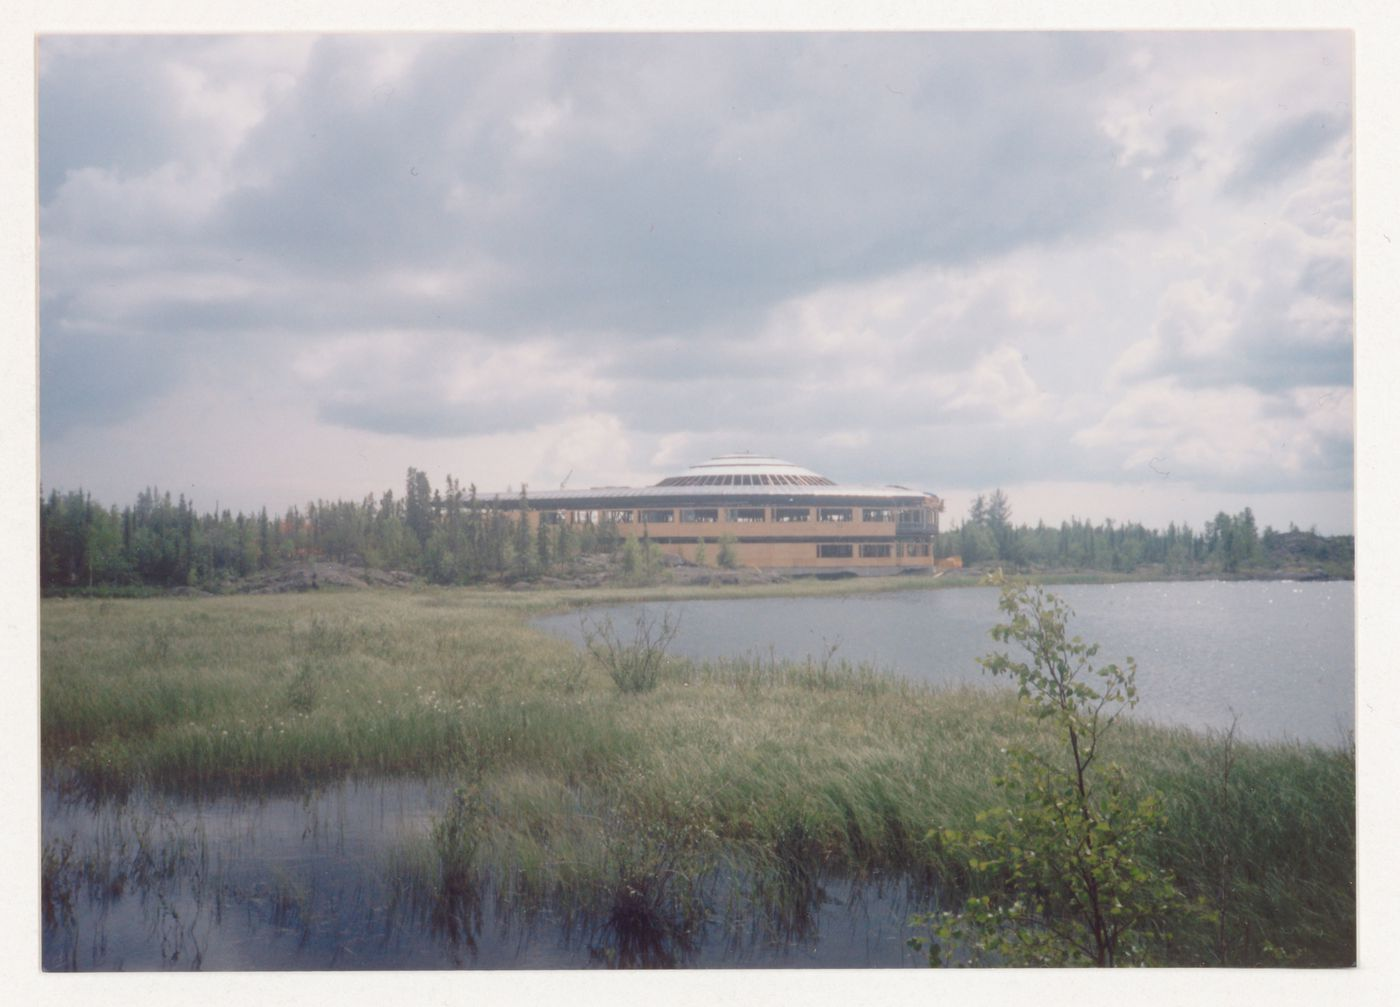 View of landscape regeneration, Northwest Territories Legislative Assembly Building, Yellowknife, Northwest Territories